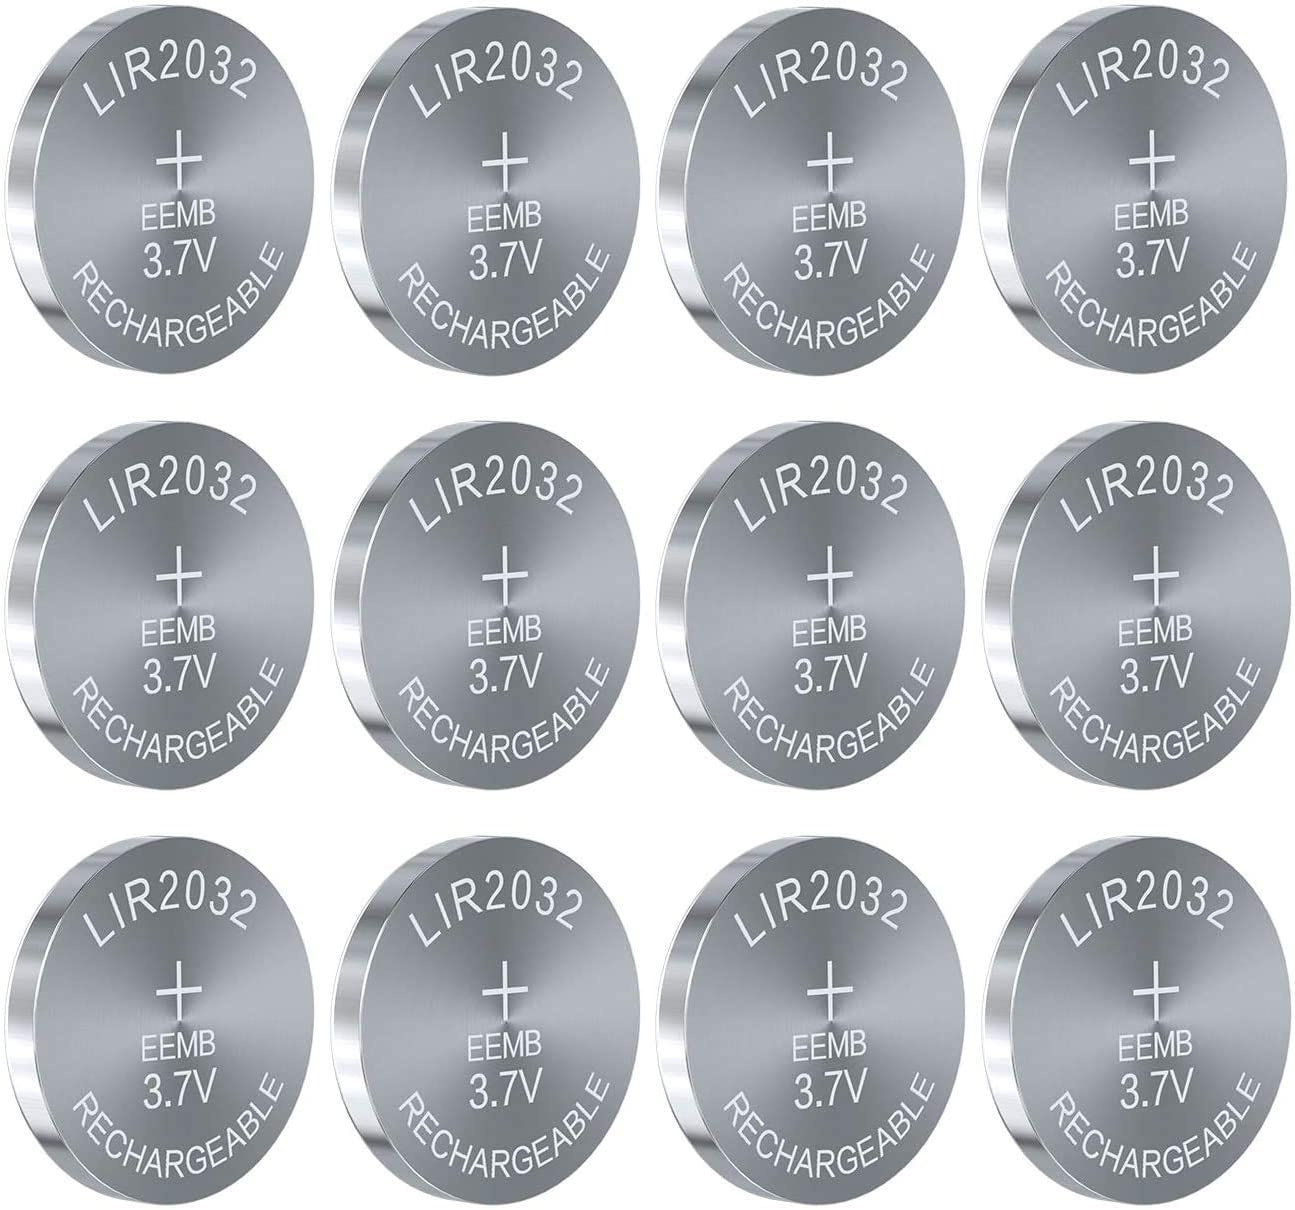 50PCS EEMB shop LIR2032 Rechargeable Battery Bu Coin Lithium-ion 3.7V Max 52% OFF